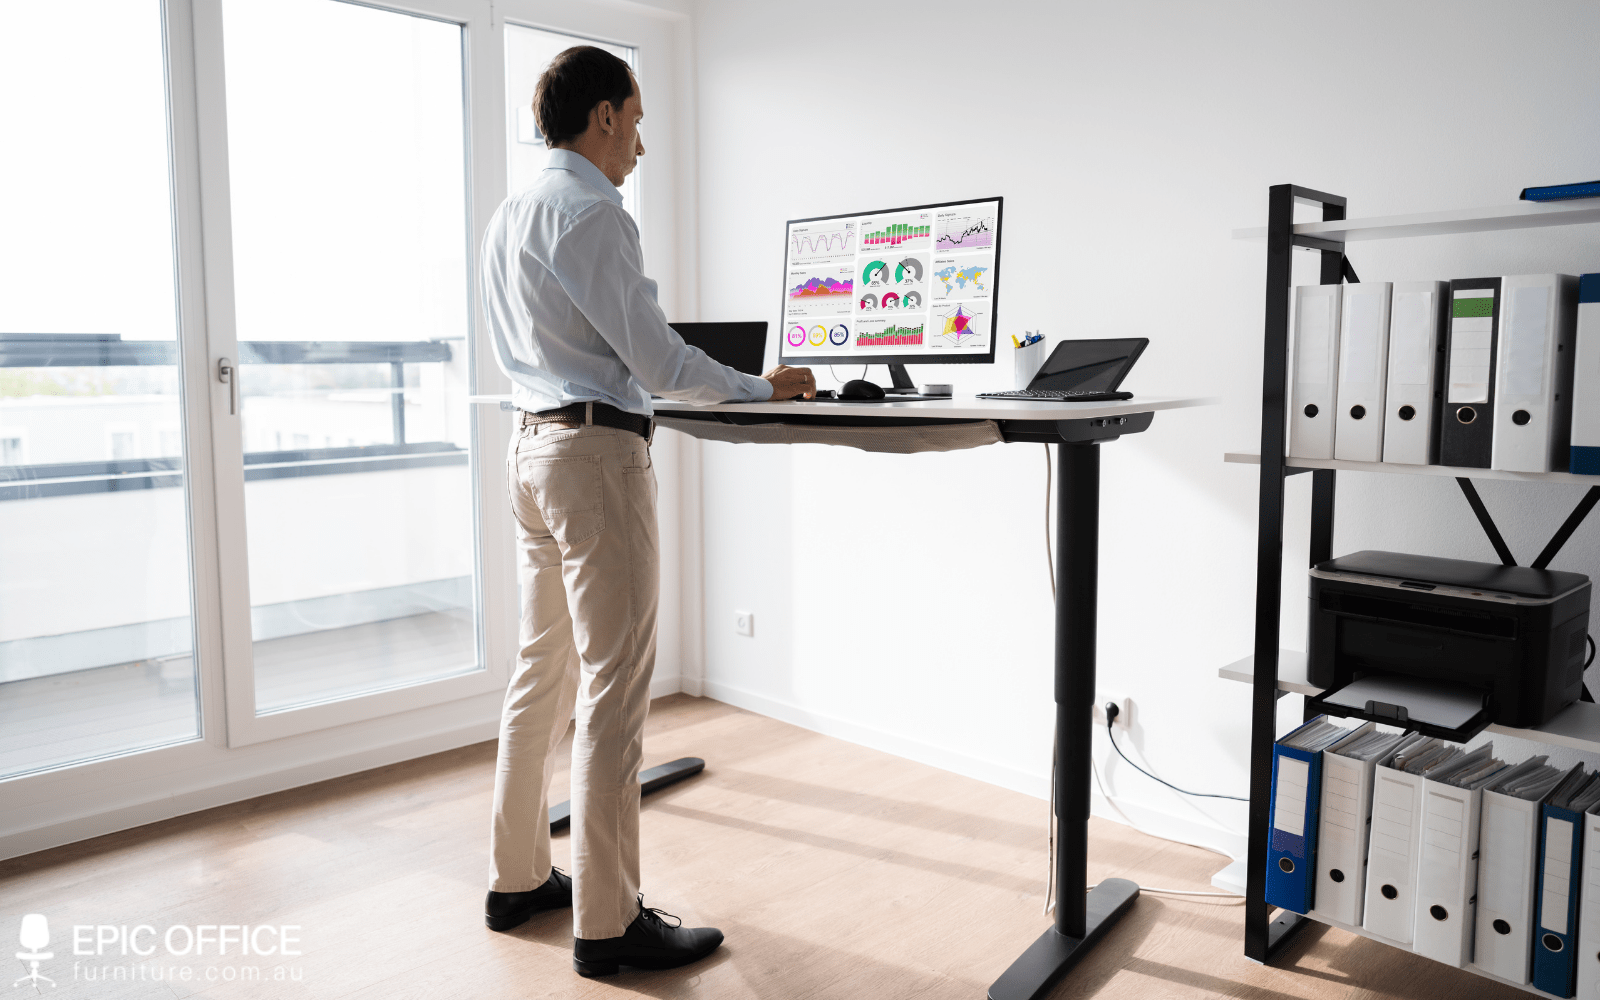 How Tall Should a Standing Desk Be?